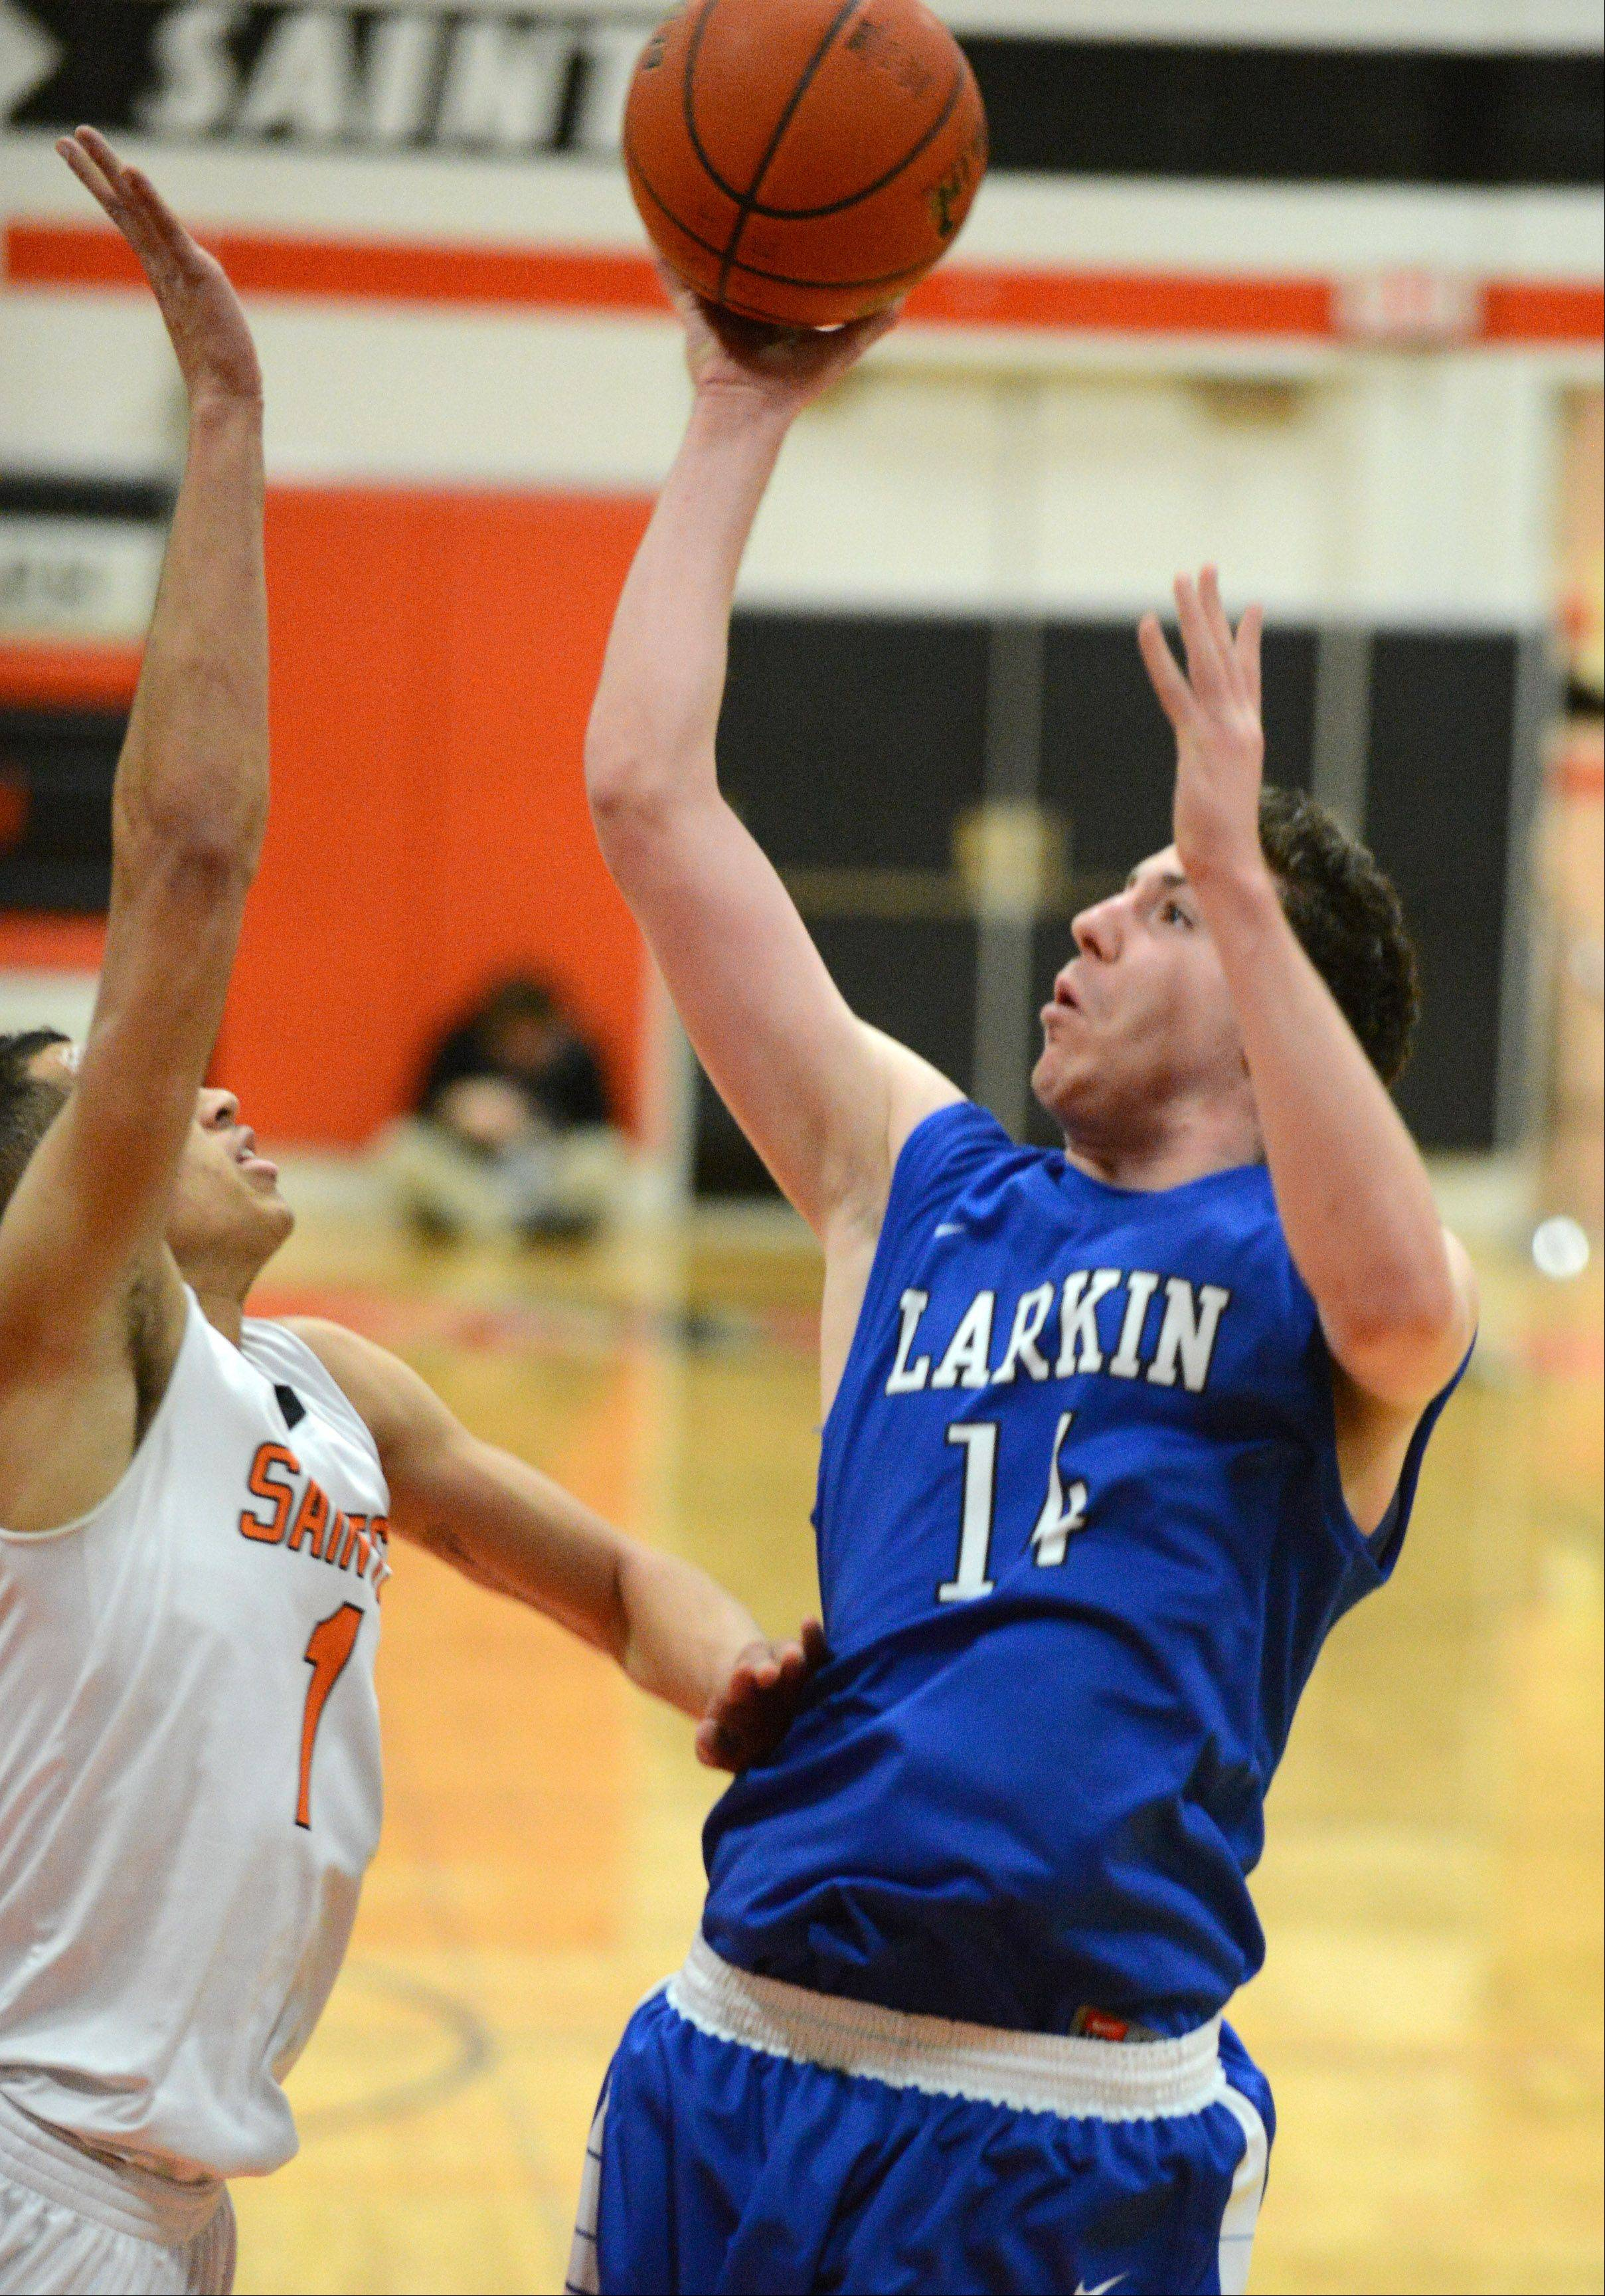 Larkin's Andrew Jones shoots over St. Charles East's AJ Washington.